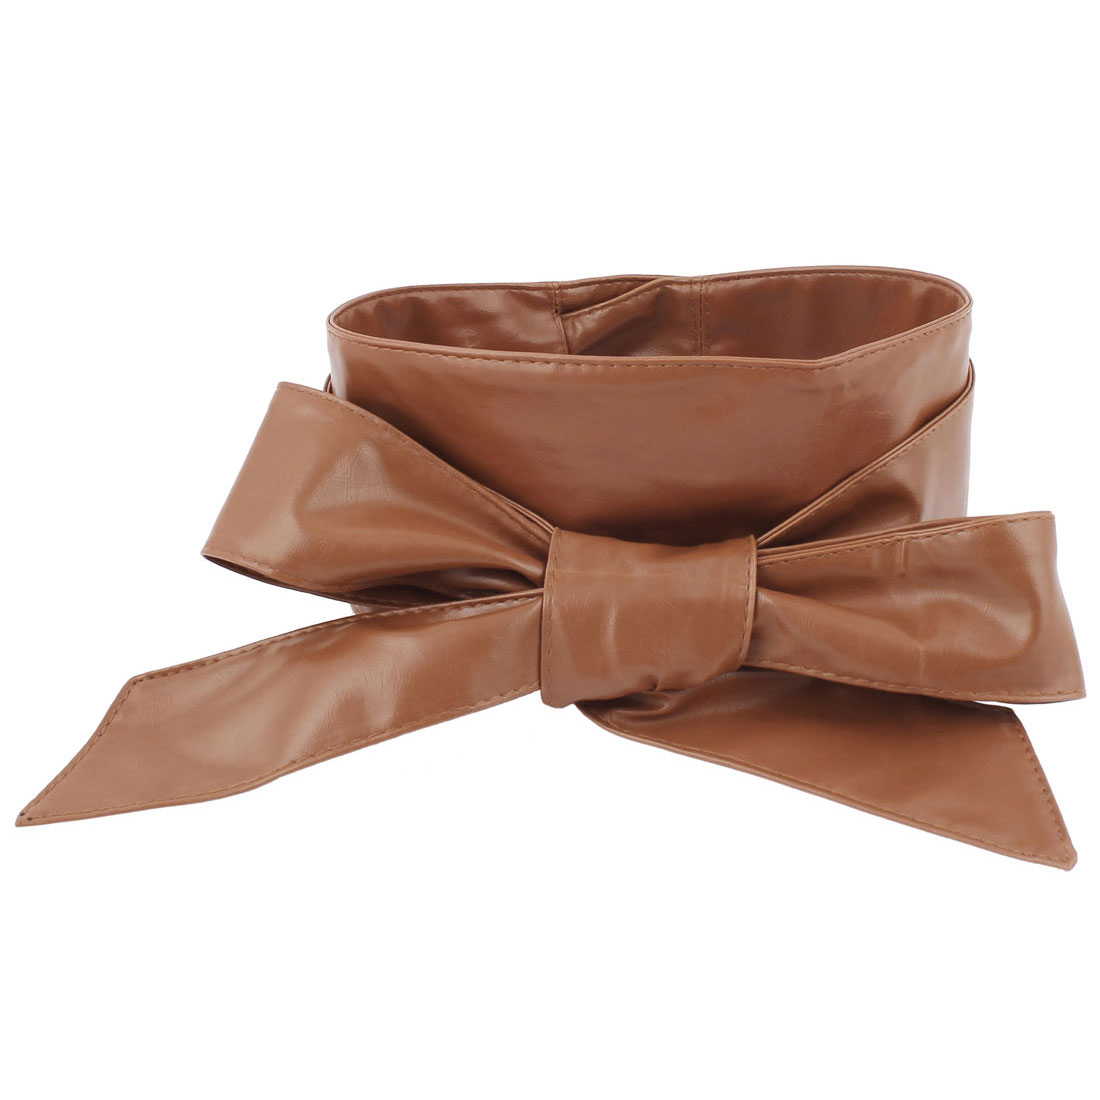 Lady Dress Wrap Around Self Tie Waistband Waistbelt Waist Belt Strap Band Camel